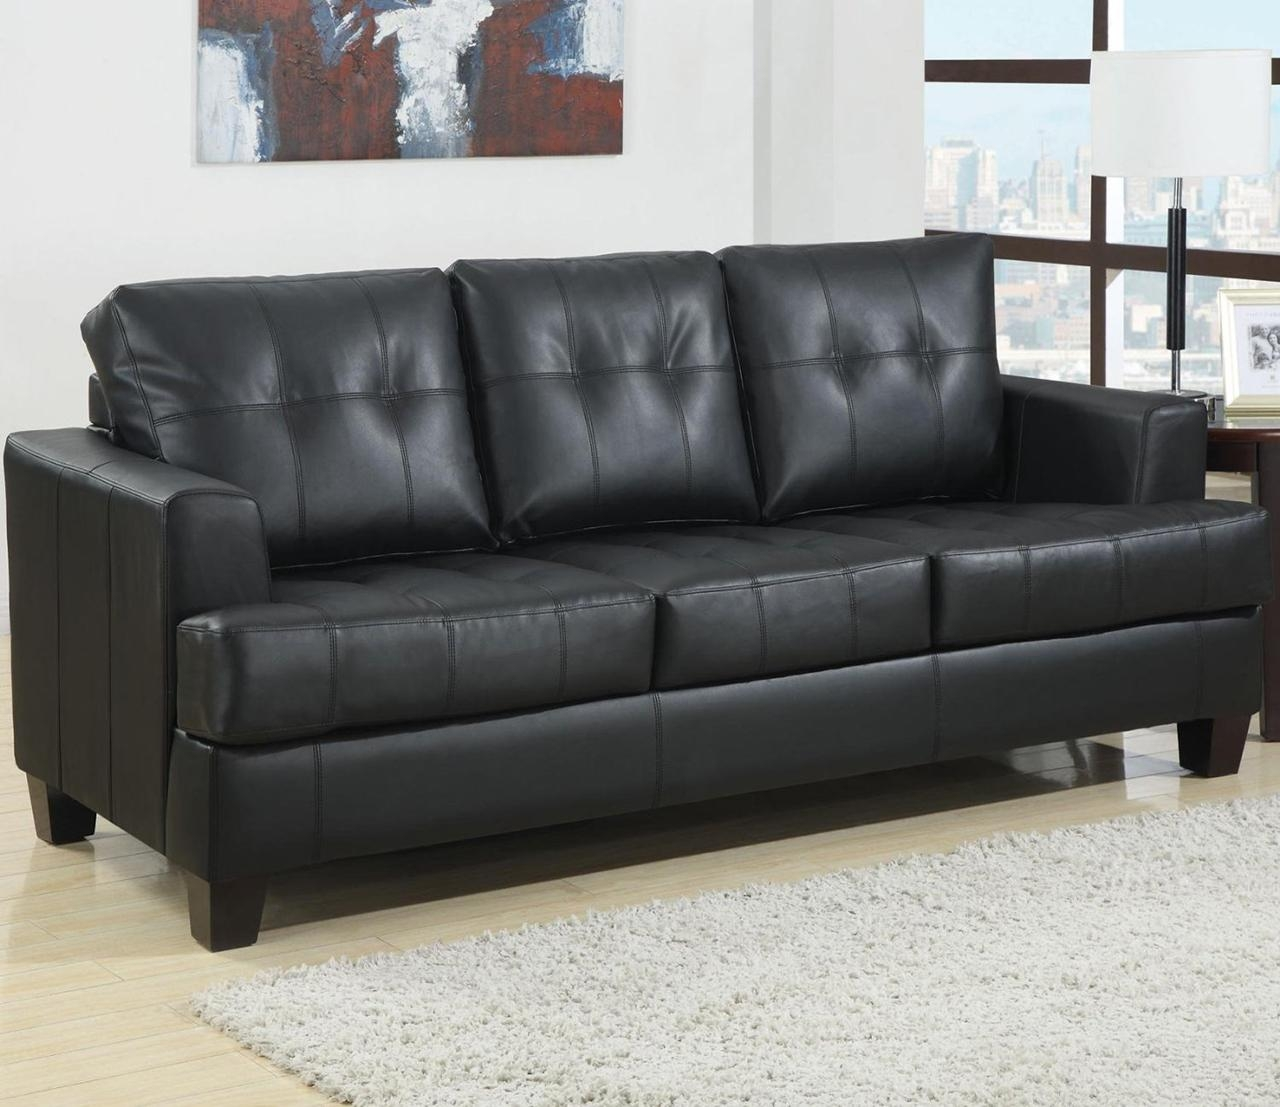 Amazing Broyhill Sectional Sleeper Sofa 40 For Your Sleeper Sofas Inside Broyhill Sectional Sleeper Sofas (Image 1 of 20)